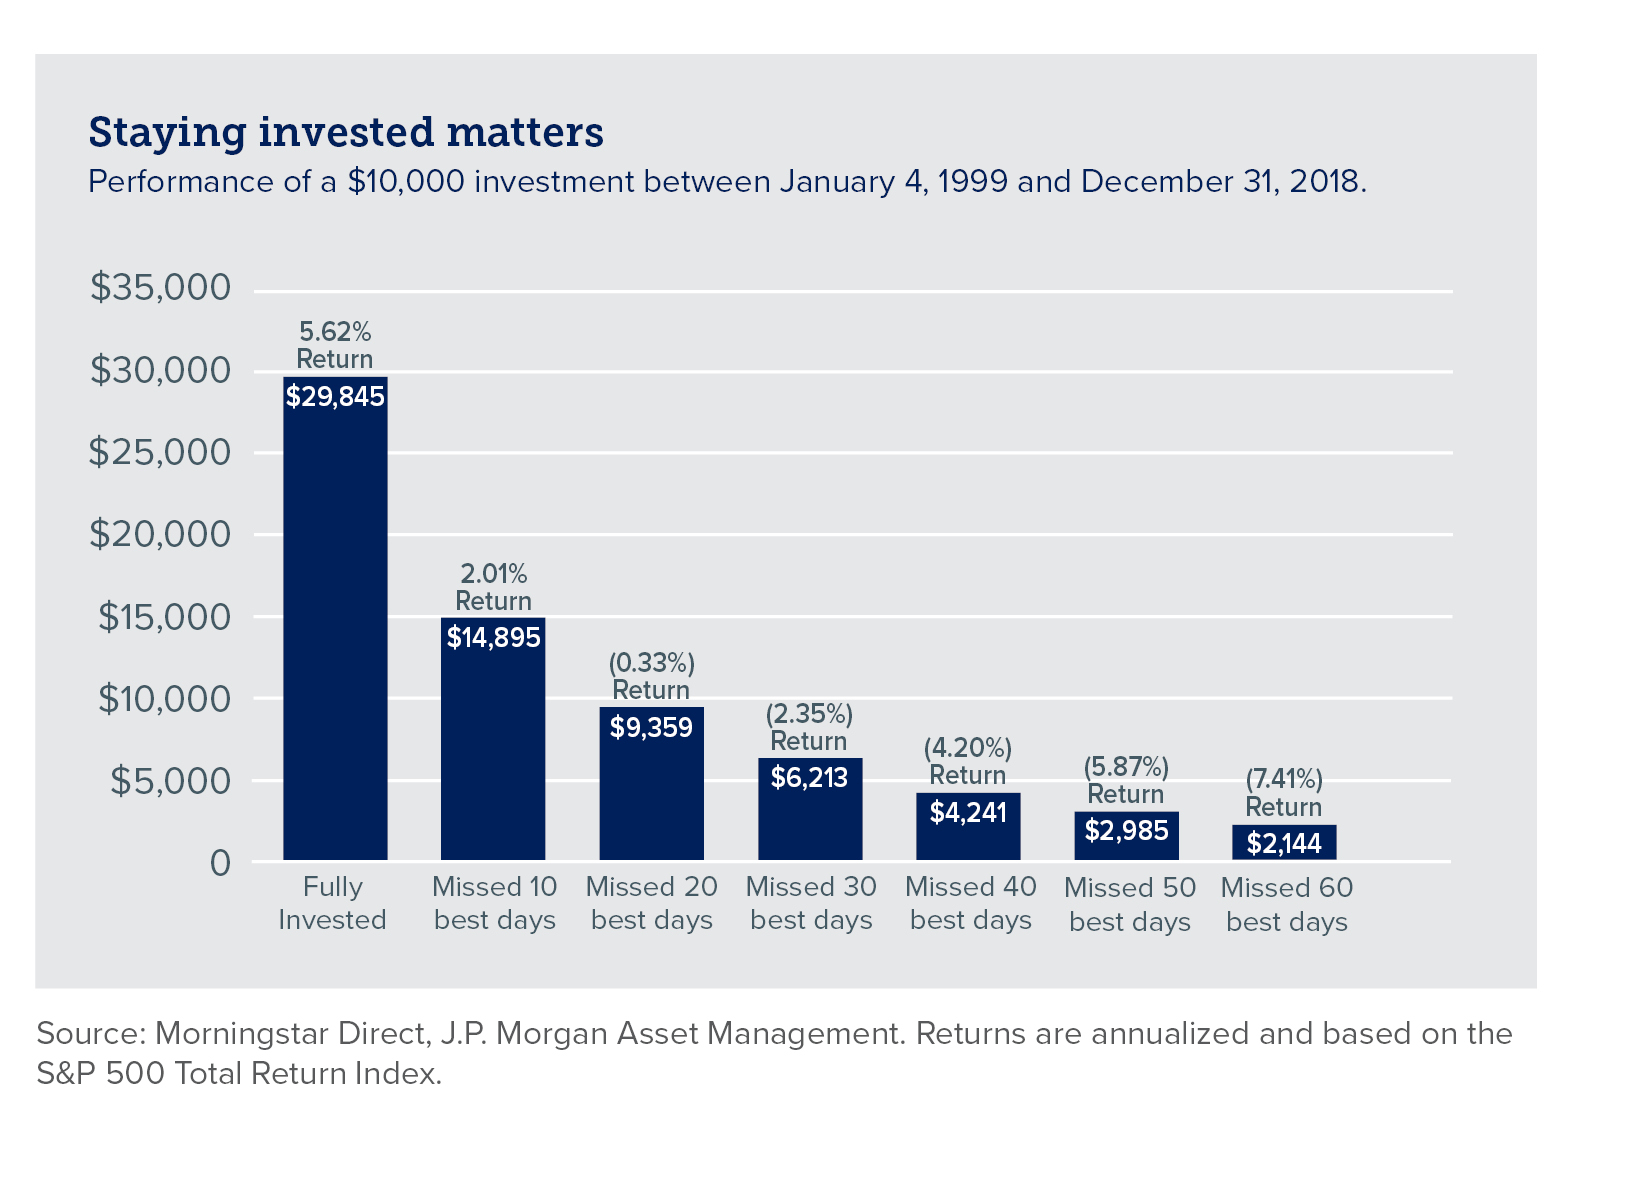 Bar graph showing performance of $10k investment over time